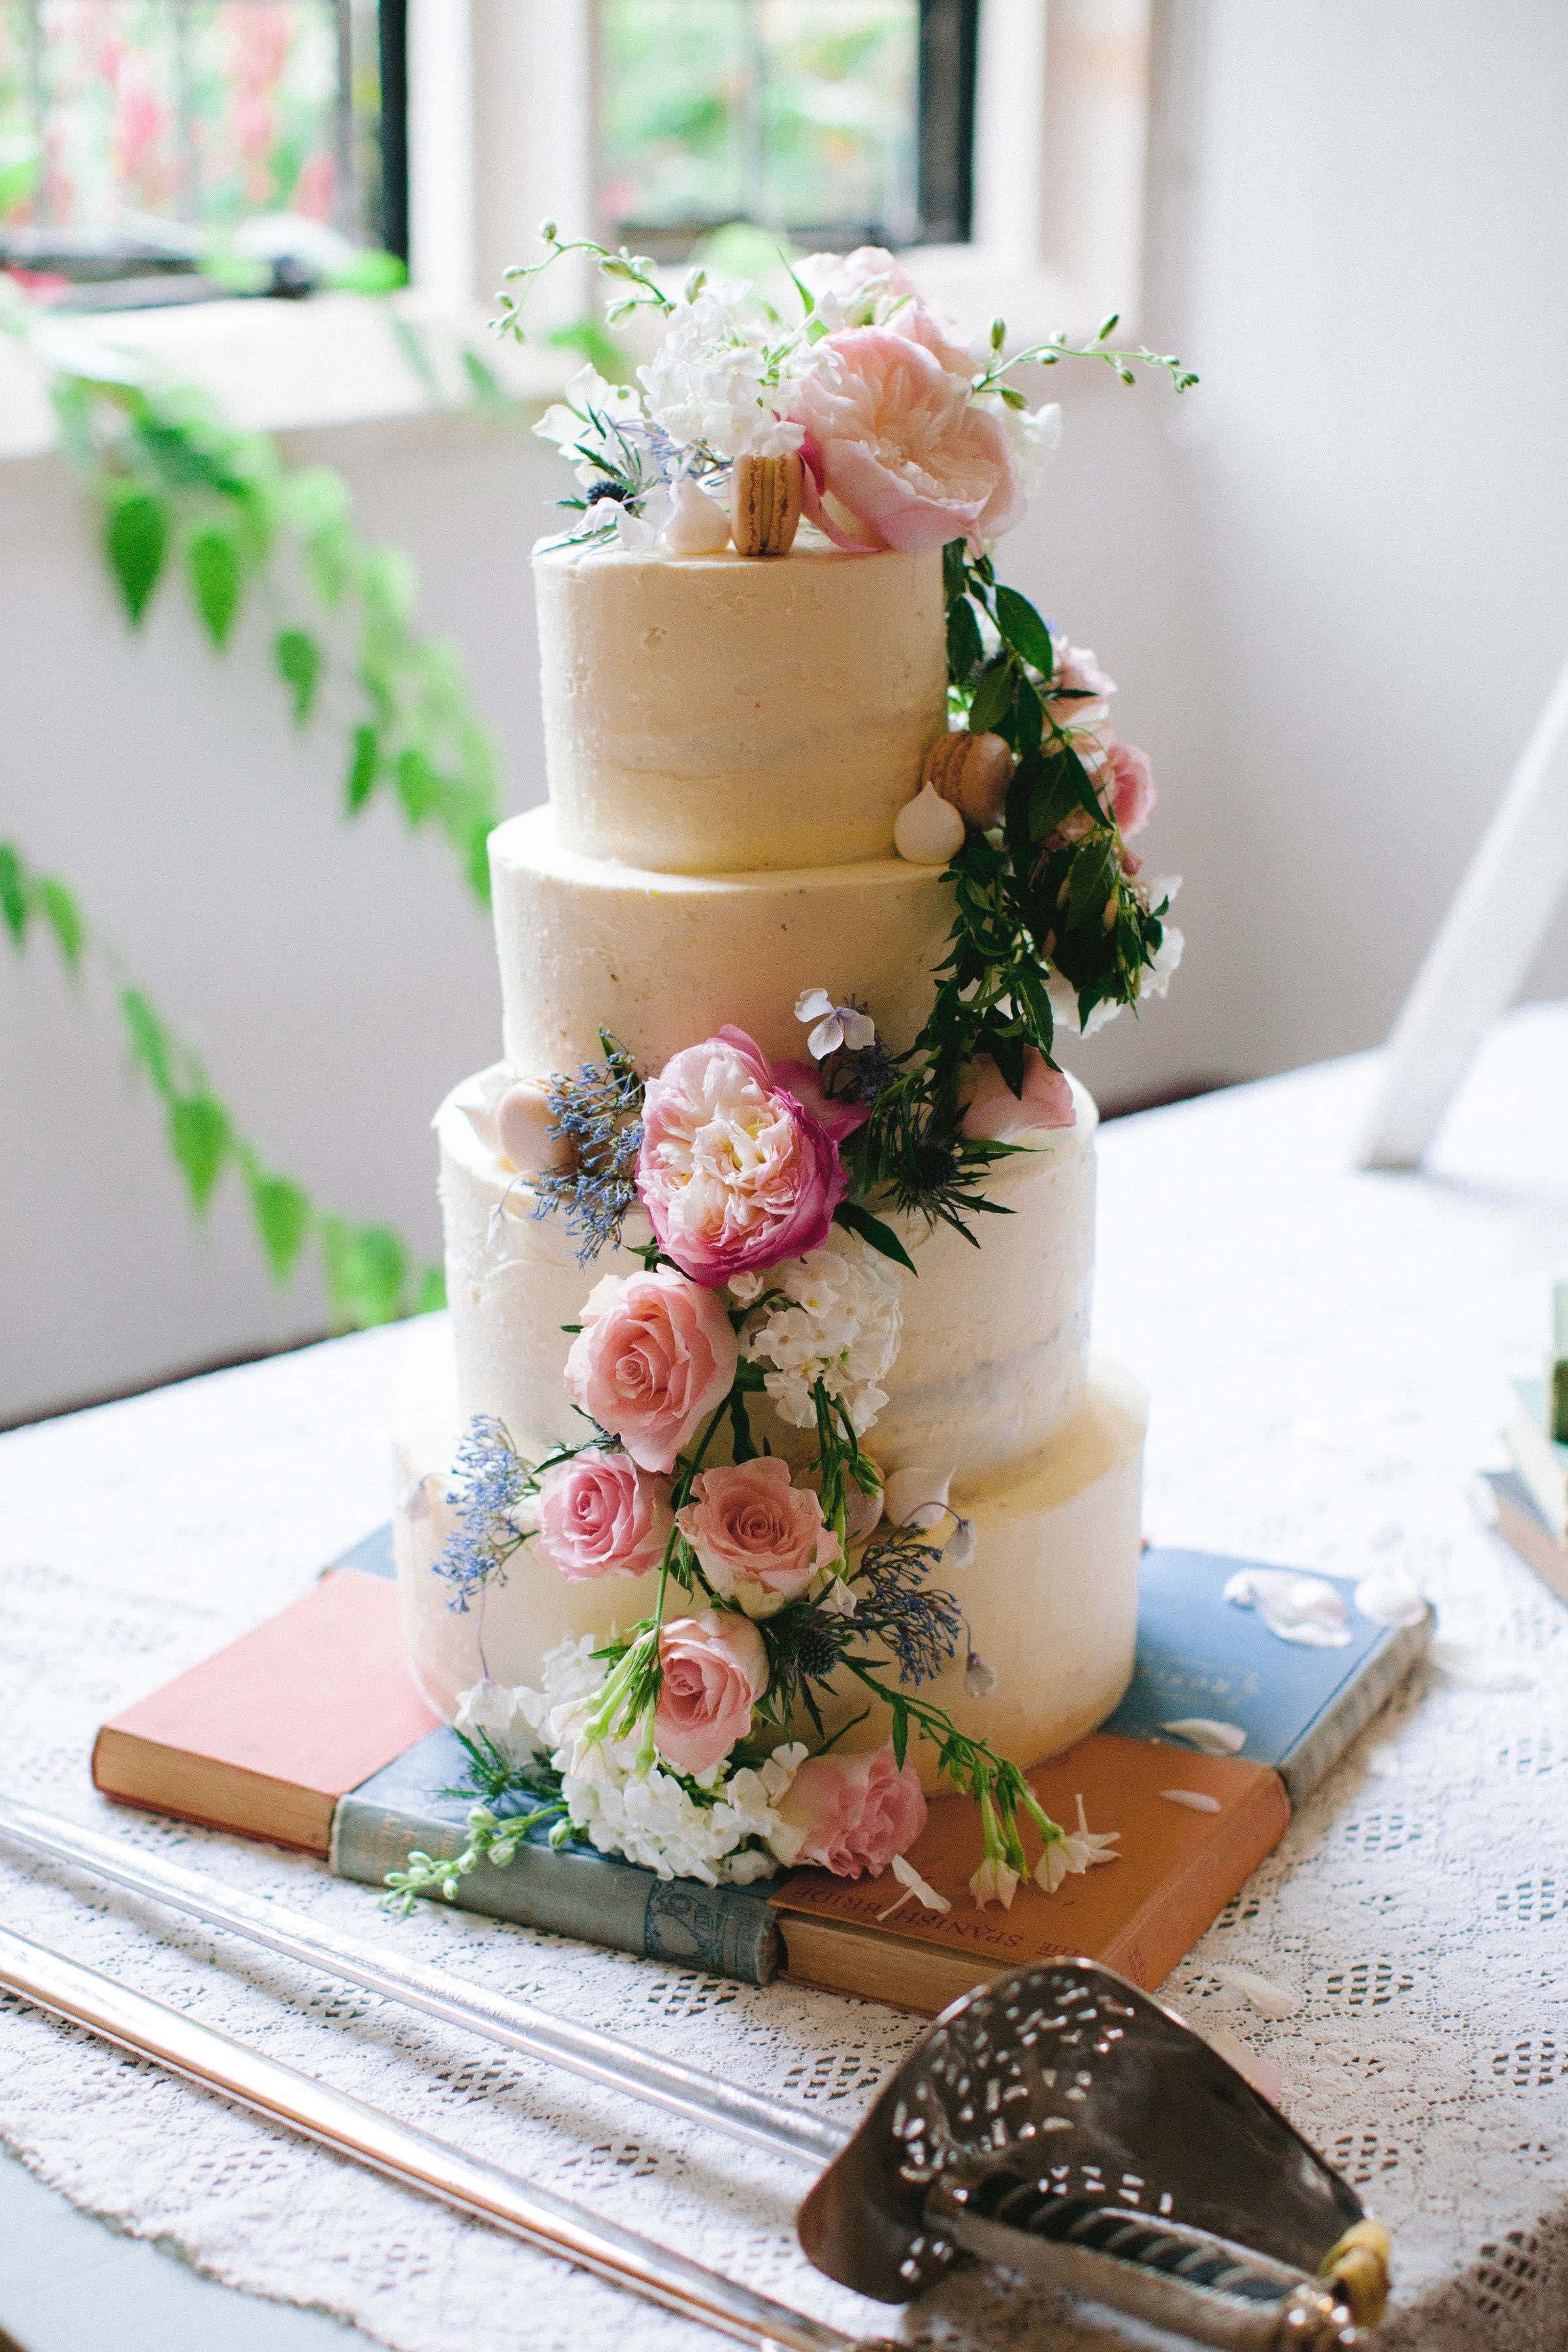 Quintessential English Summer wedding cake decorated with fresh garden flowers. Photo by Camila Arnhold.